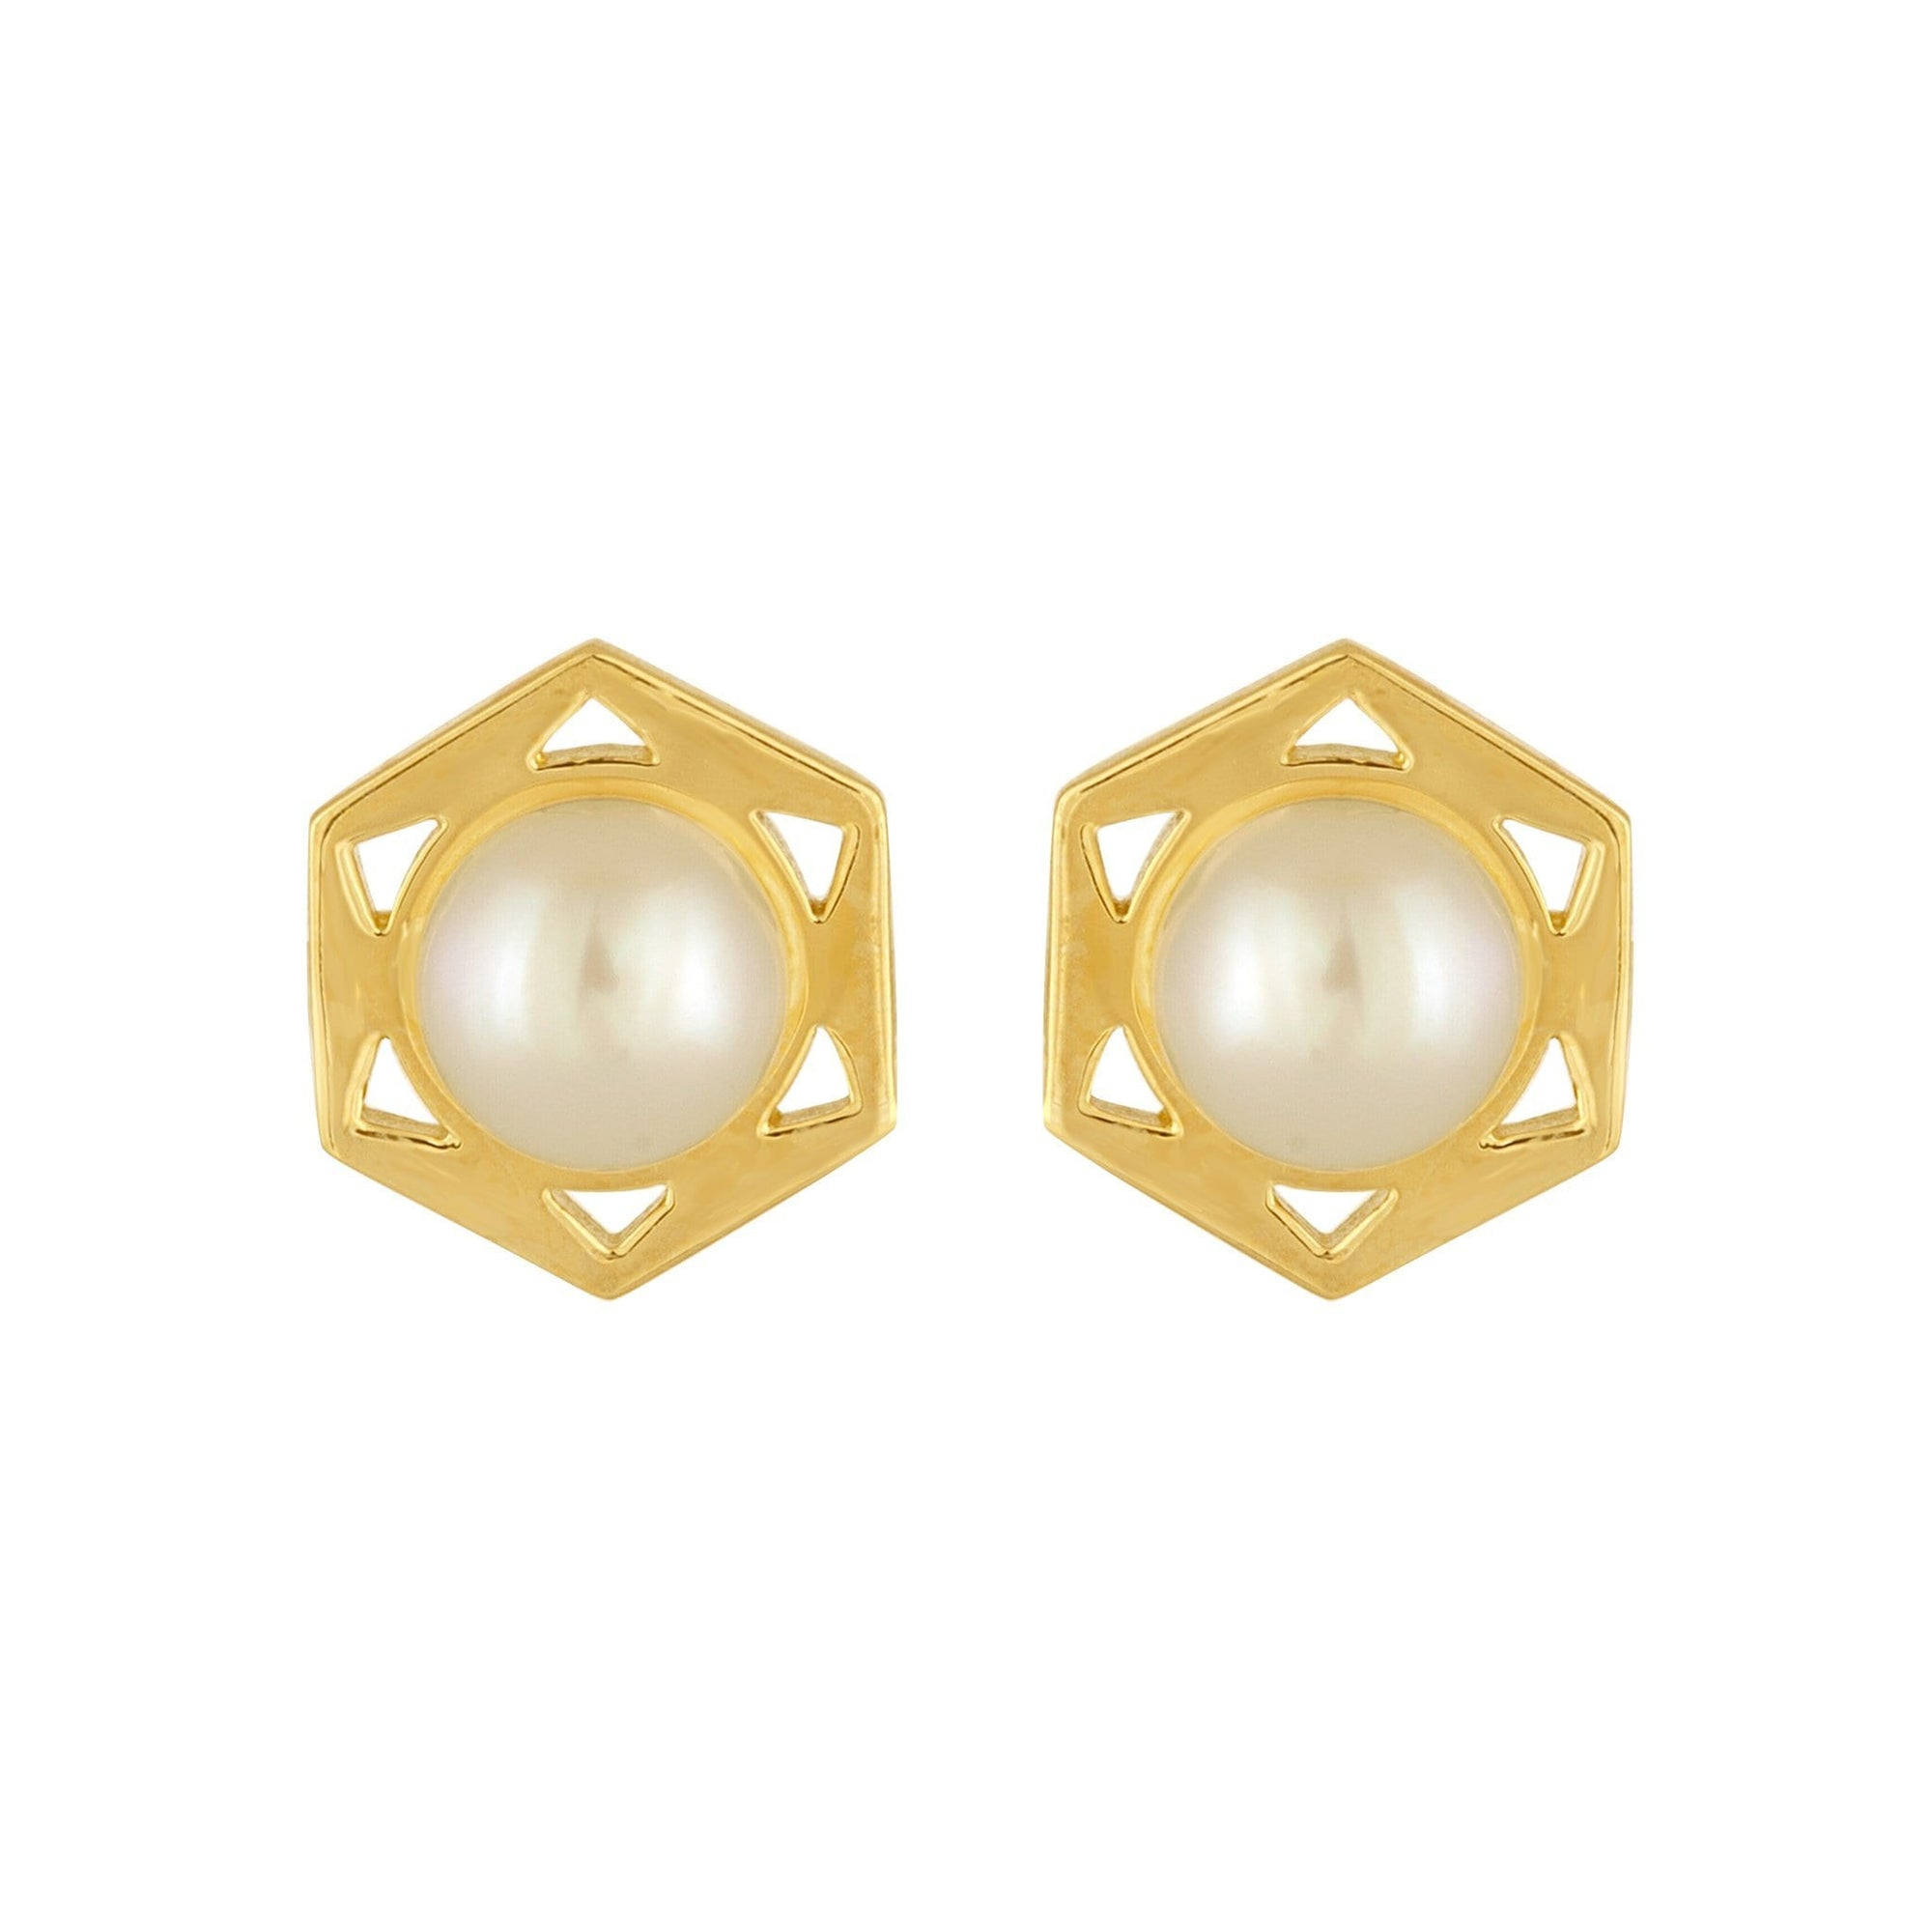 Cosmo Stud Earrings: 18k Gold, Pearls